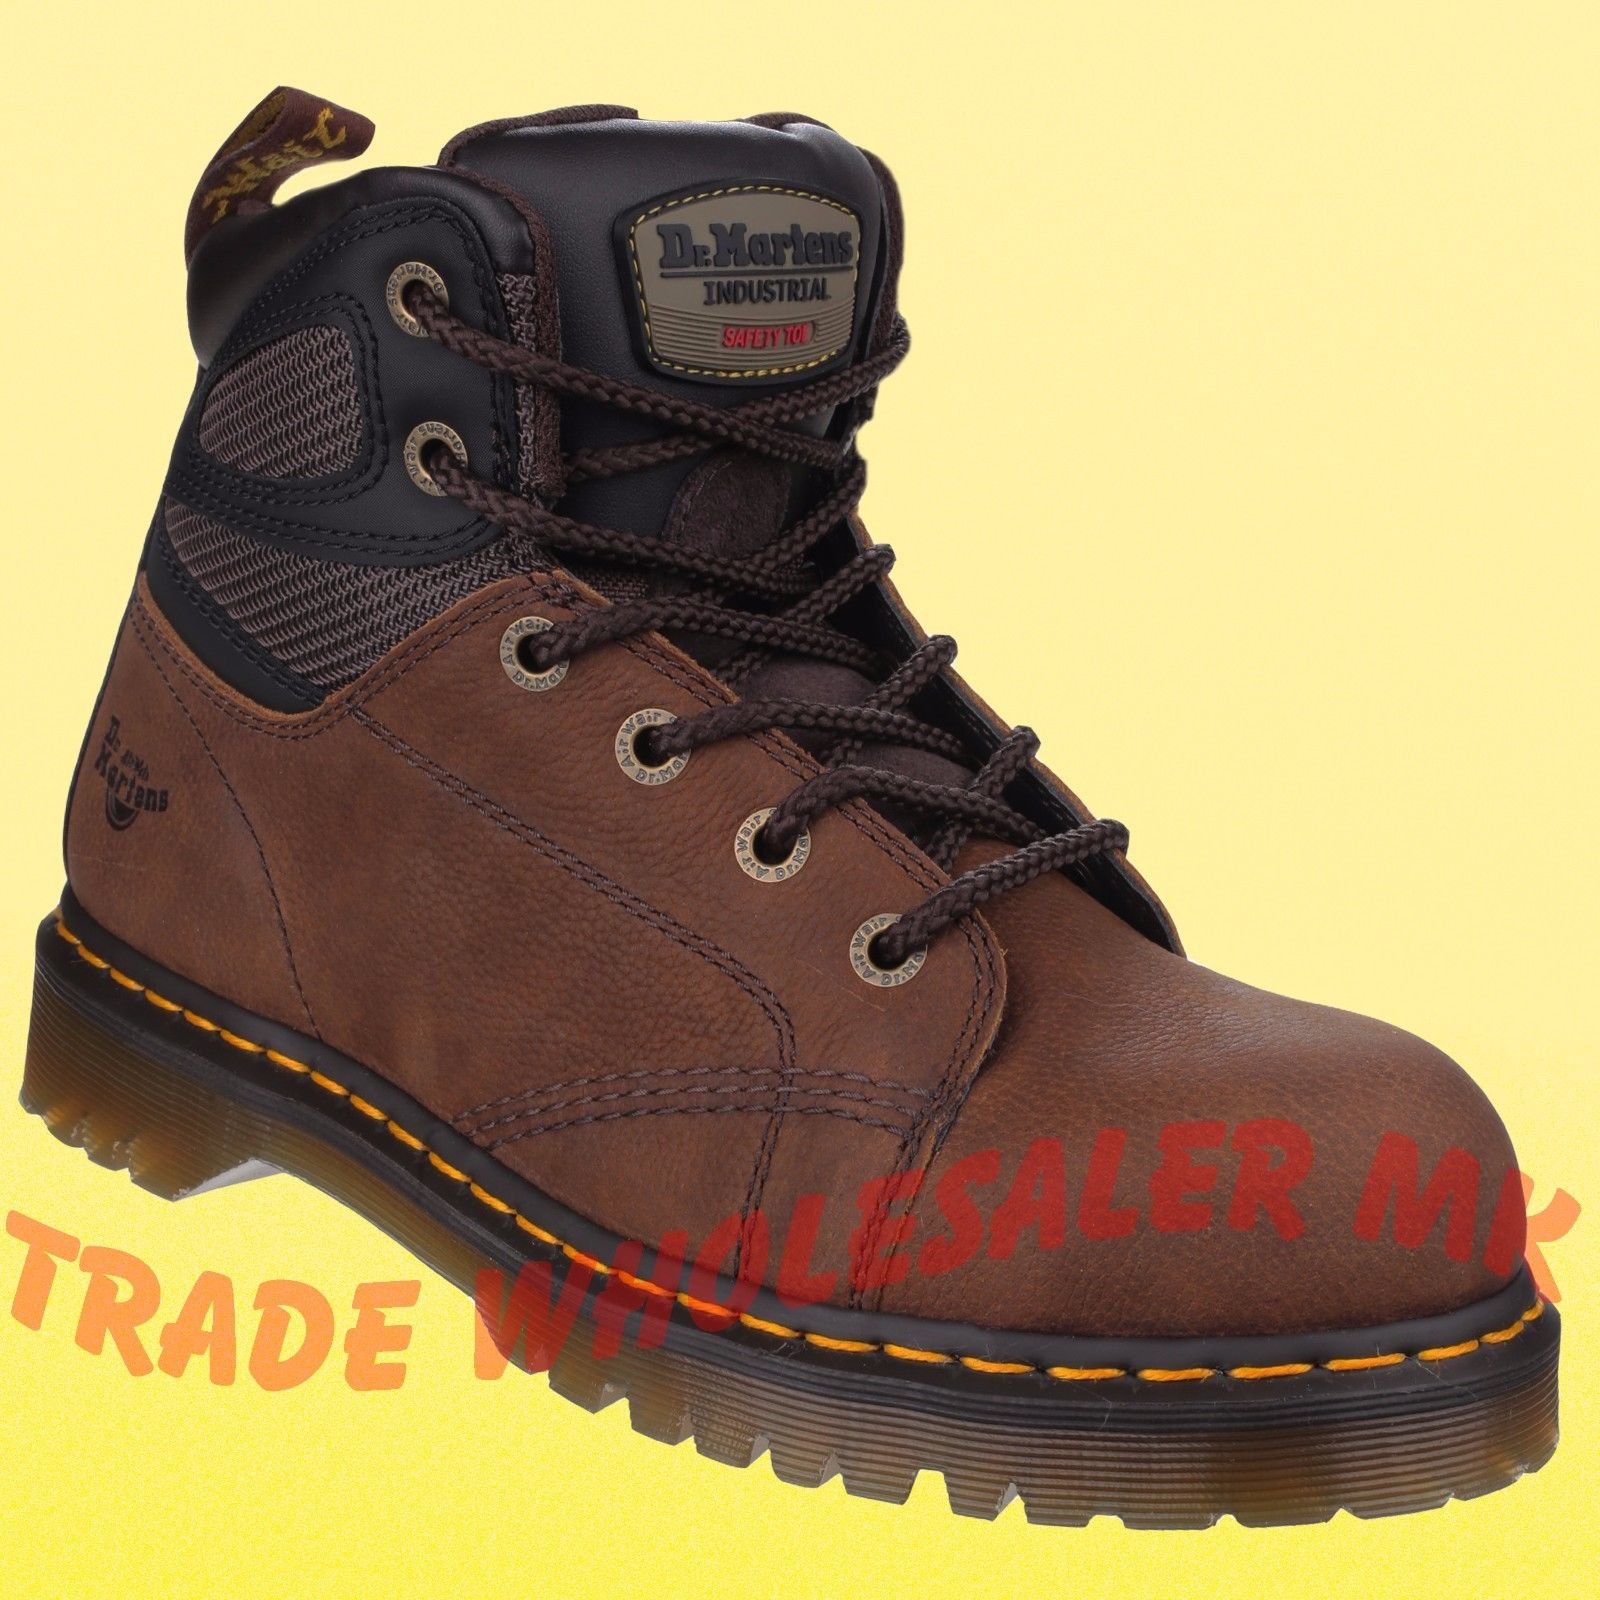 a45716be2ab Dr Martens 6 eyelet Fairleigh steel toe Safety Boots New Styling from DM